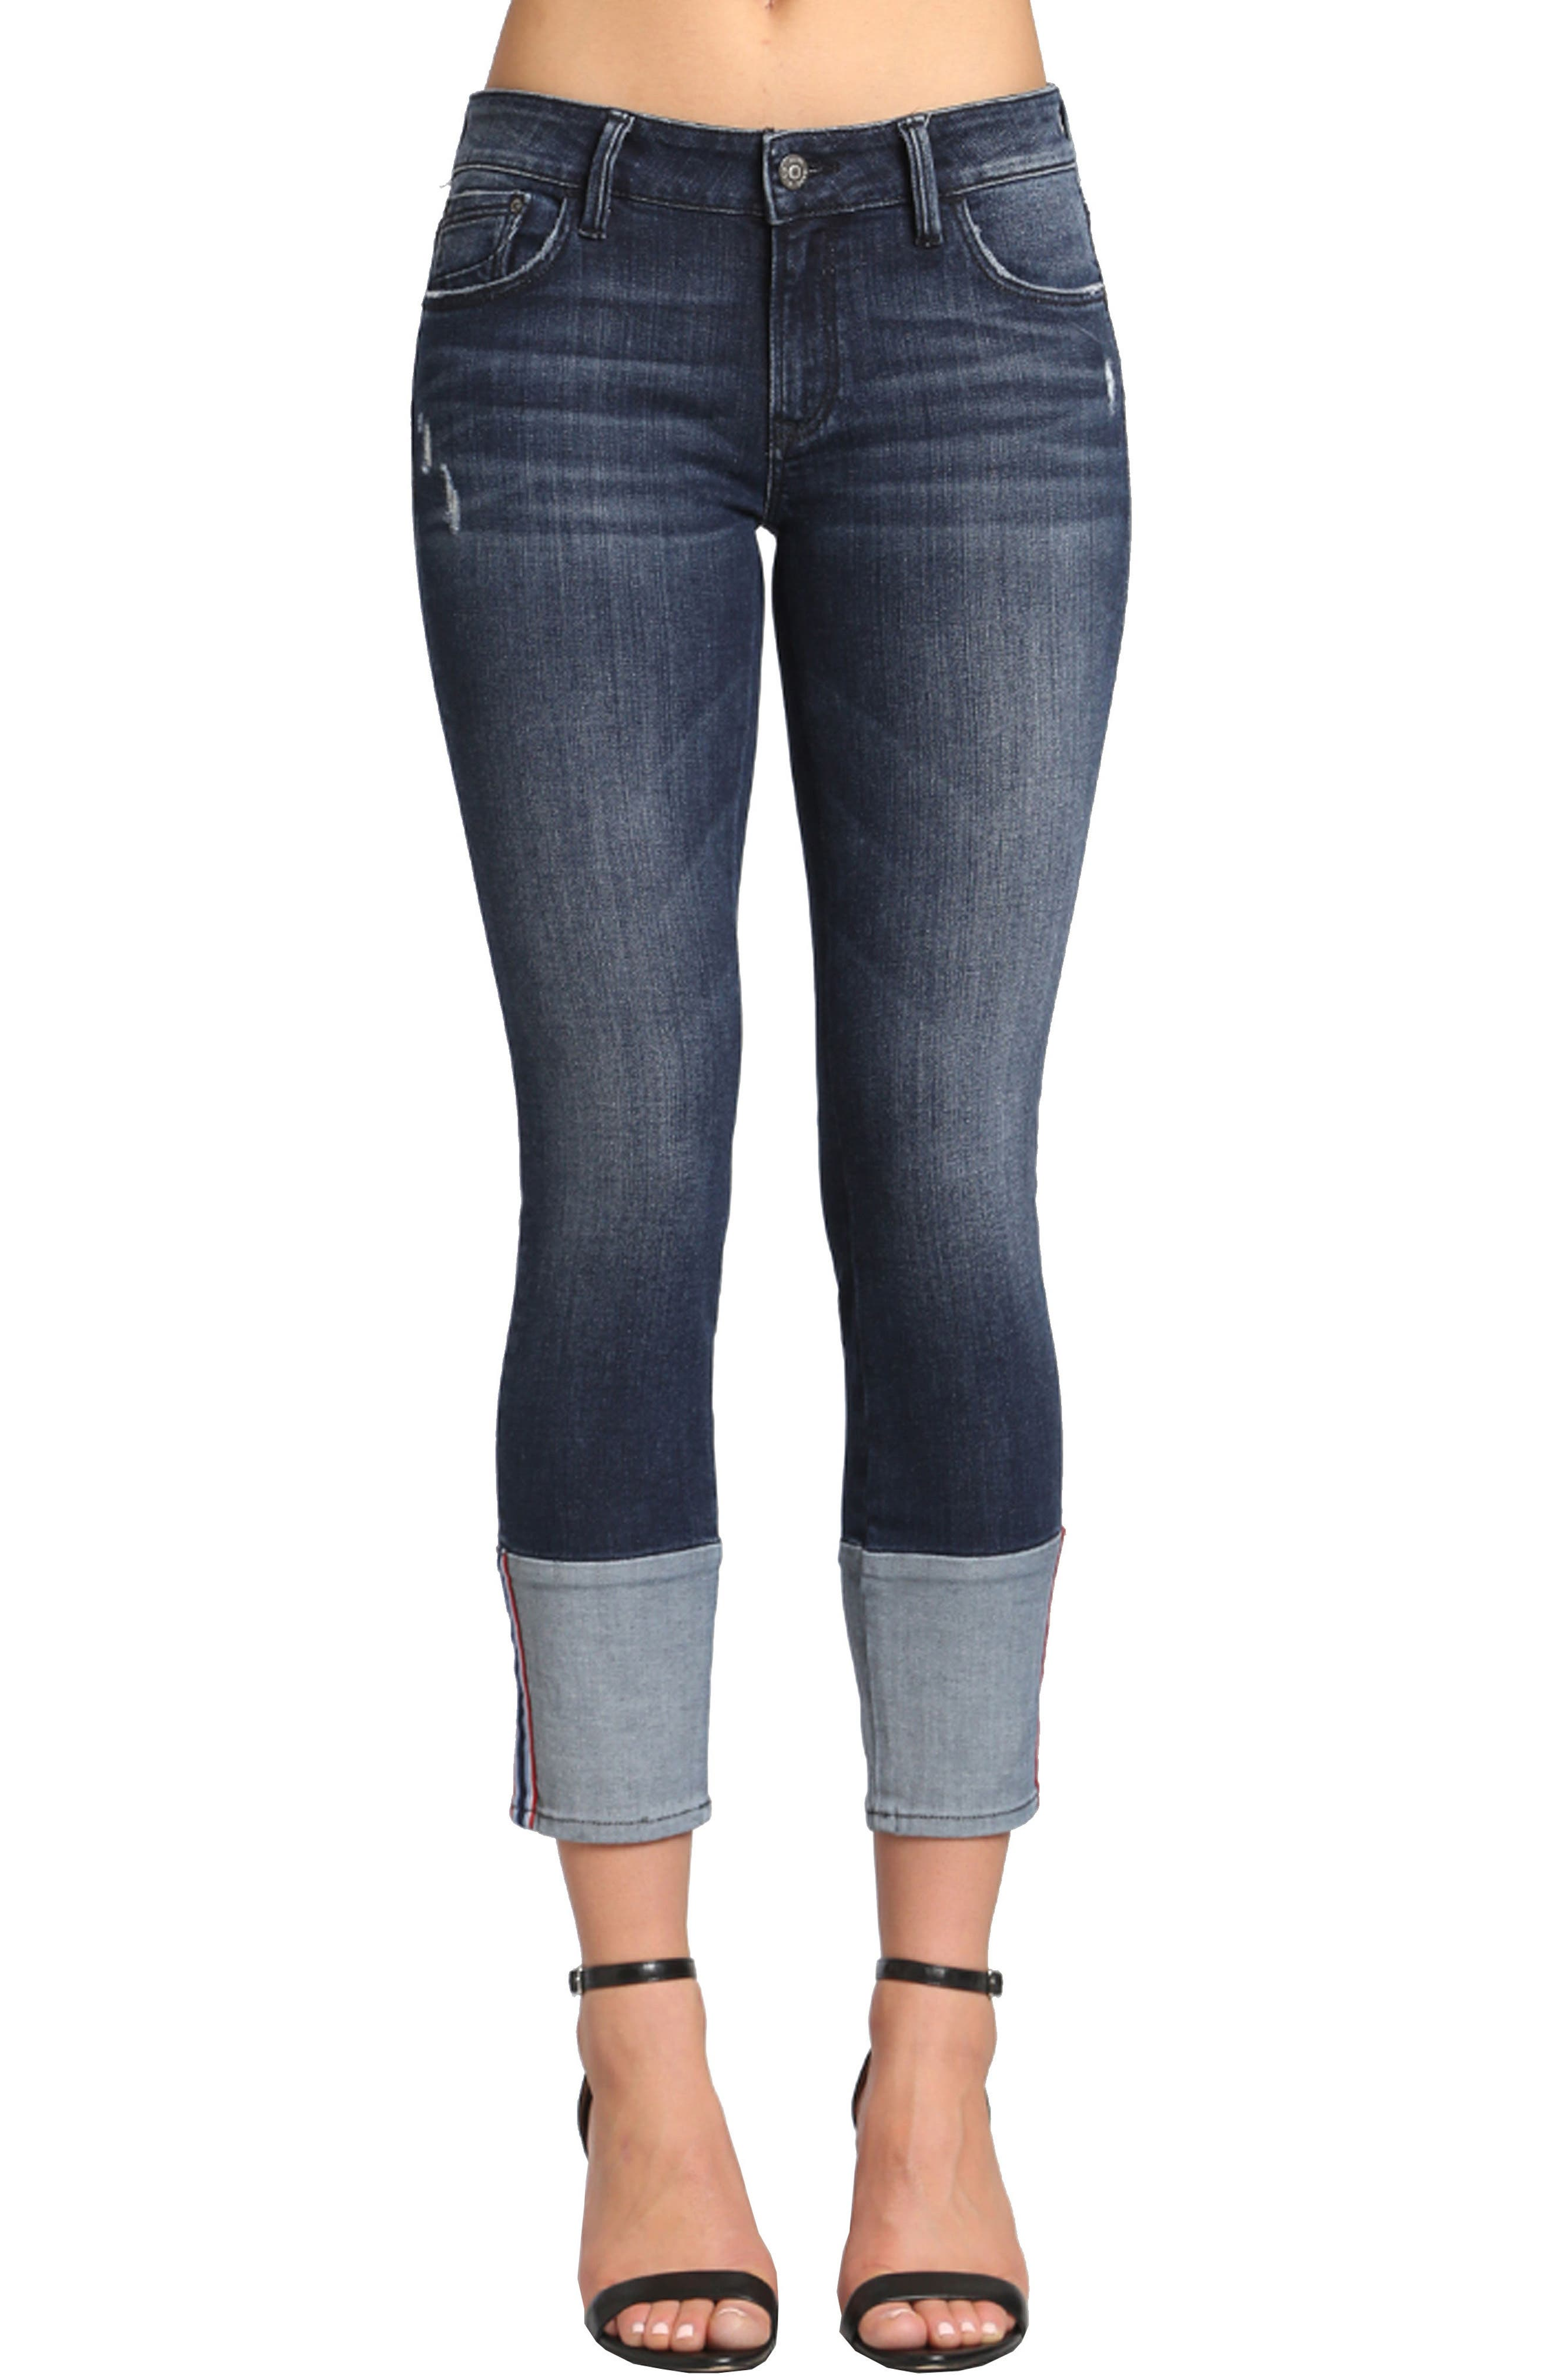 Caisy Cuffed Skinny Crop Jeans,                         Main,                         color, Dark Vintage